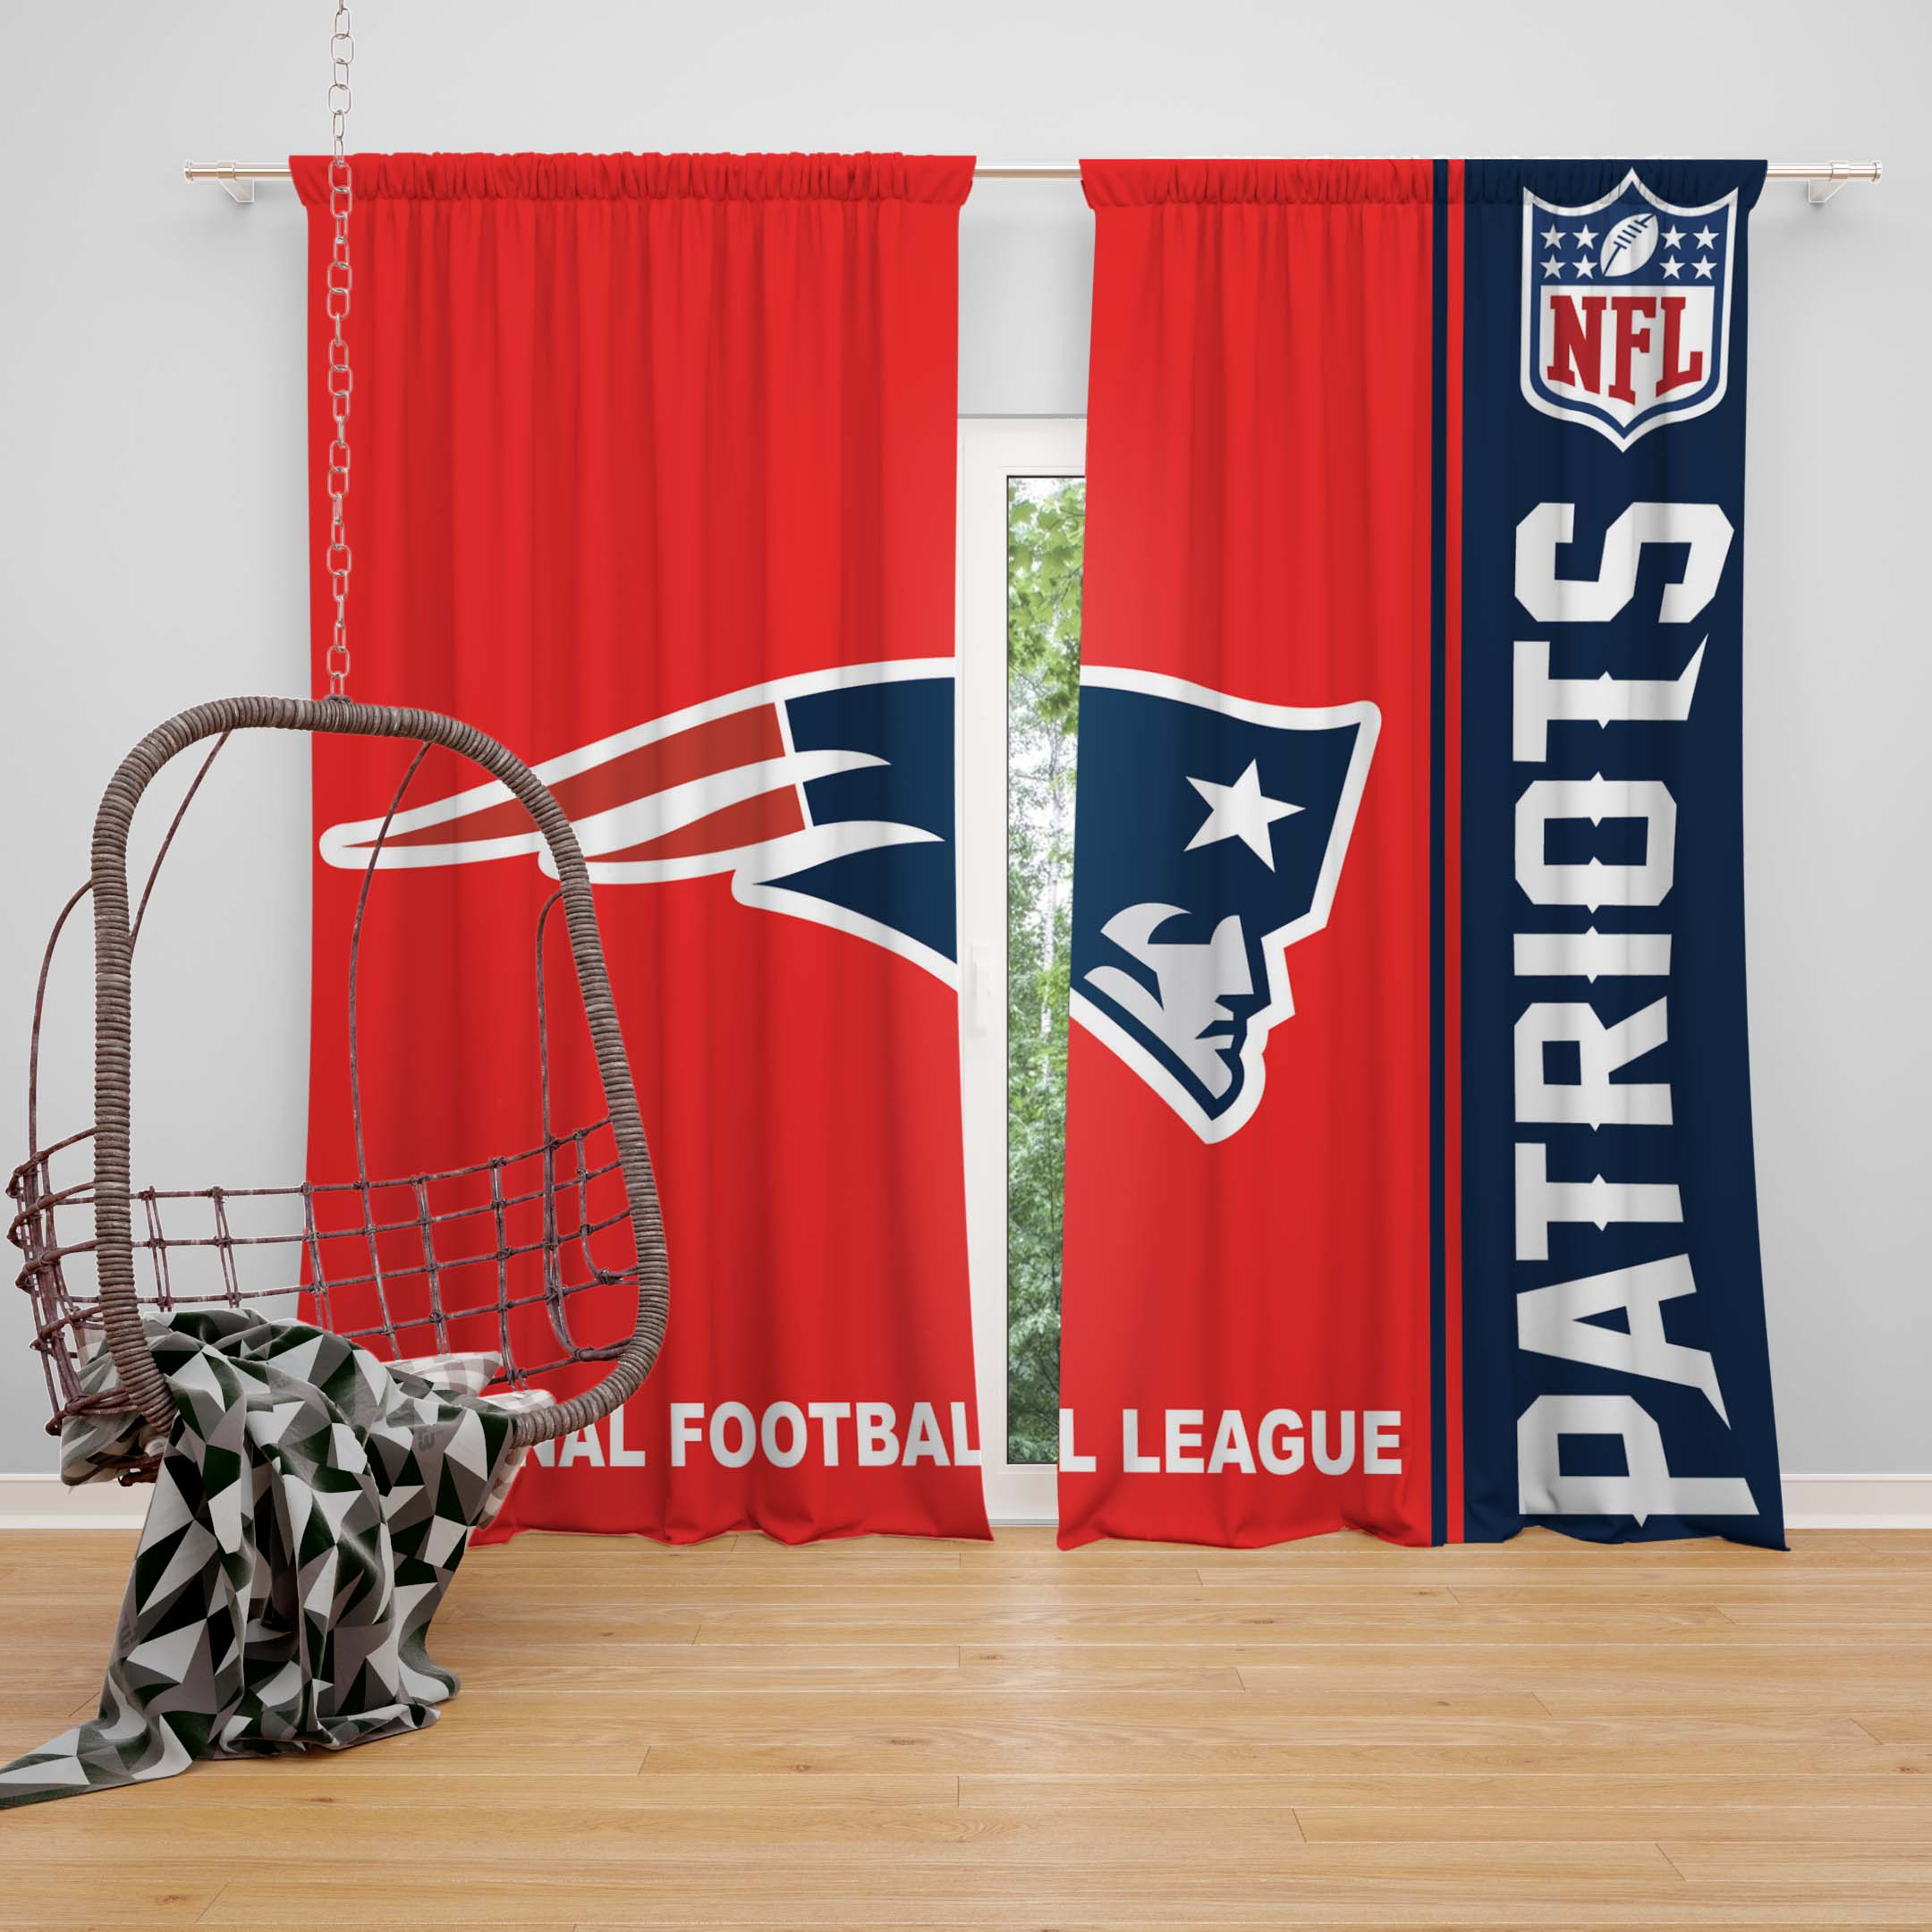 Nfl New England Patriots Bedroom Curtain Ebeddingsets